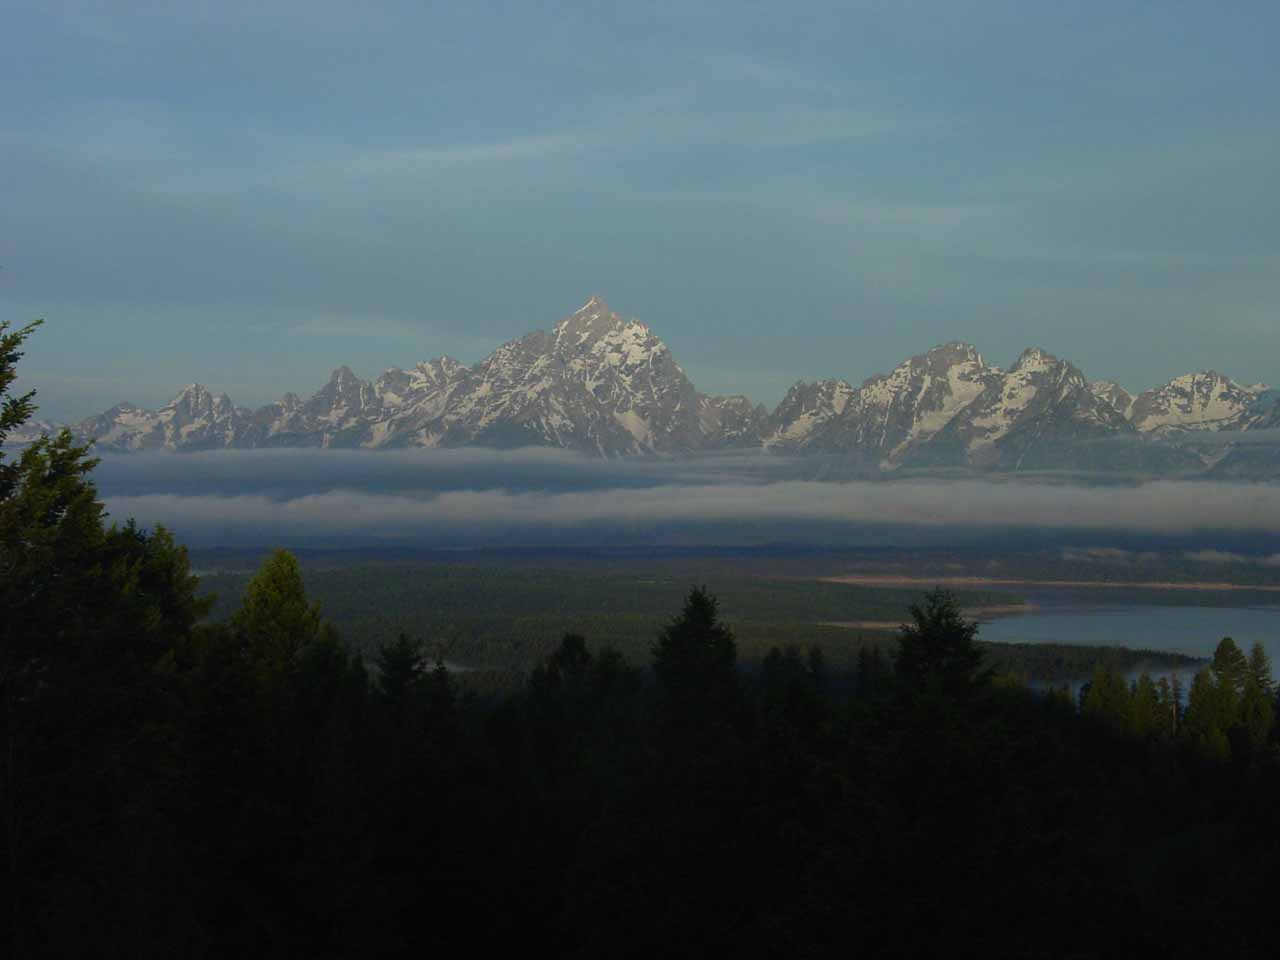 View of the Teton Range above the early morning fog from atop Signal Mountain